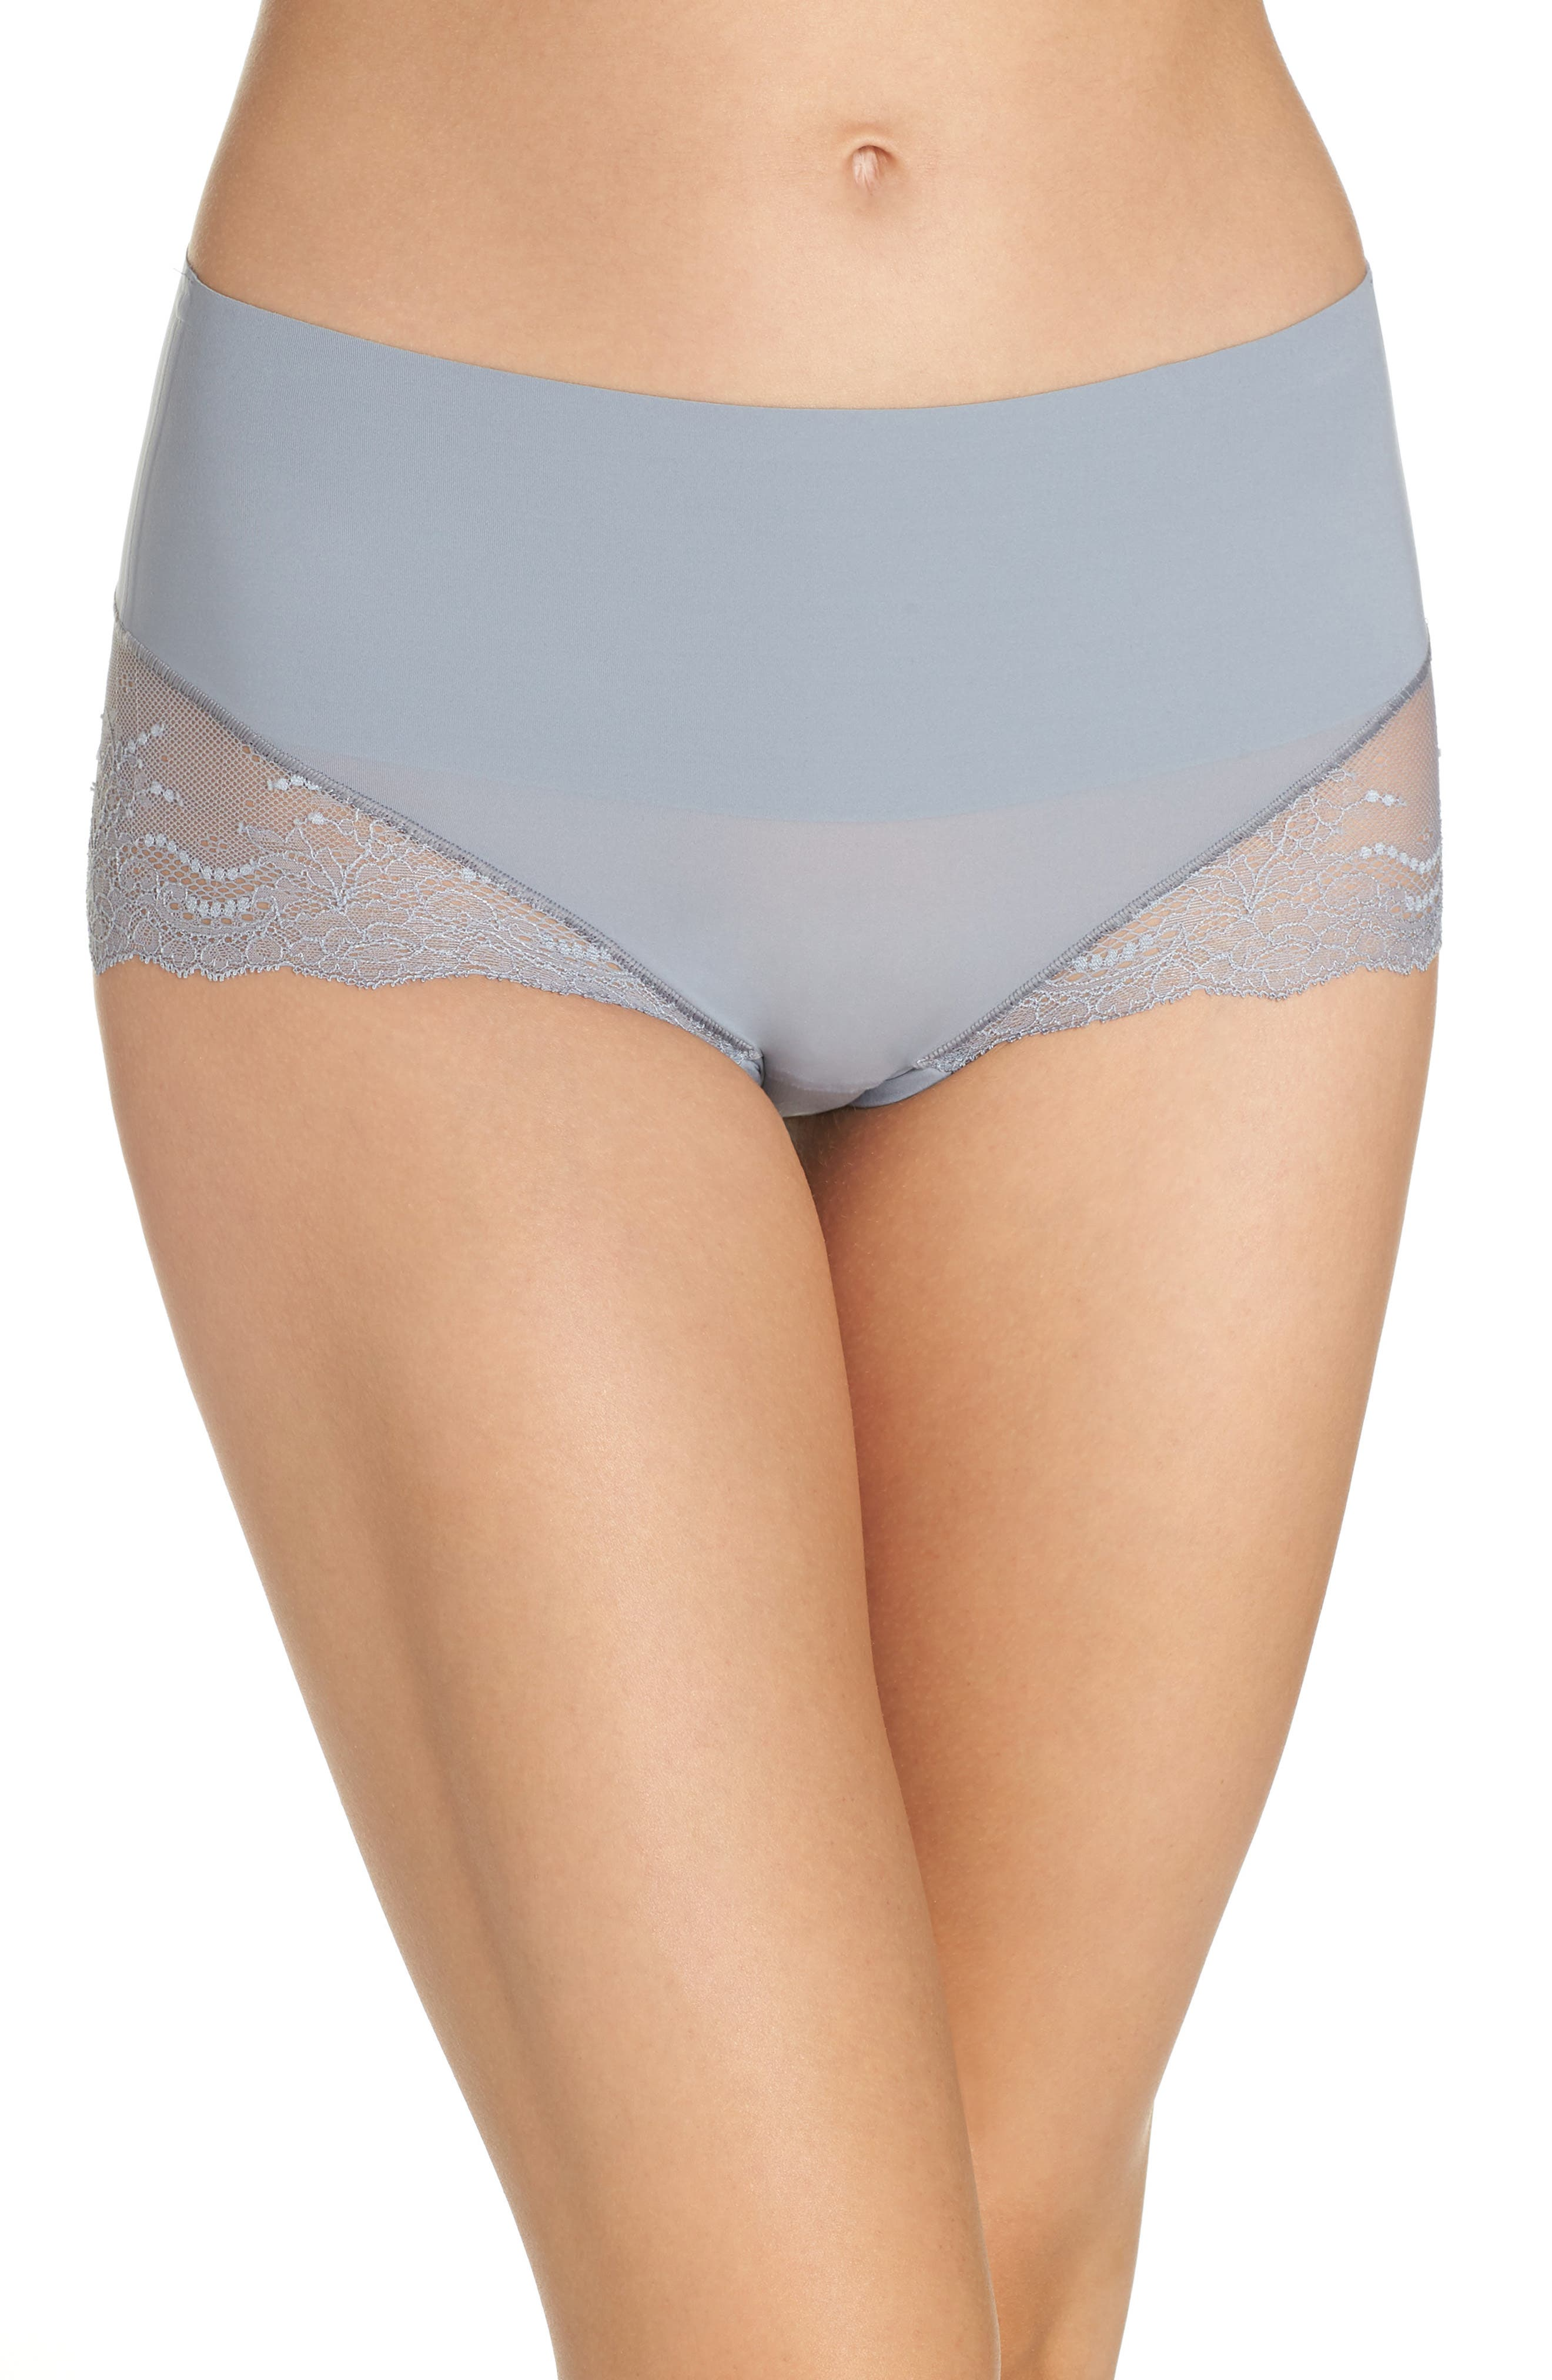 Undie-tectable Lace Hipster Panties,                         Main,                         color, FOG GREY